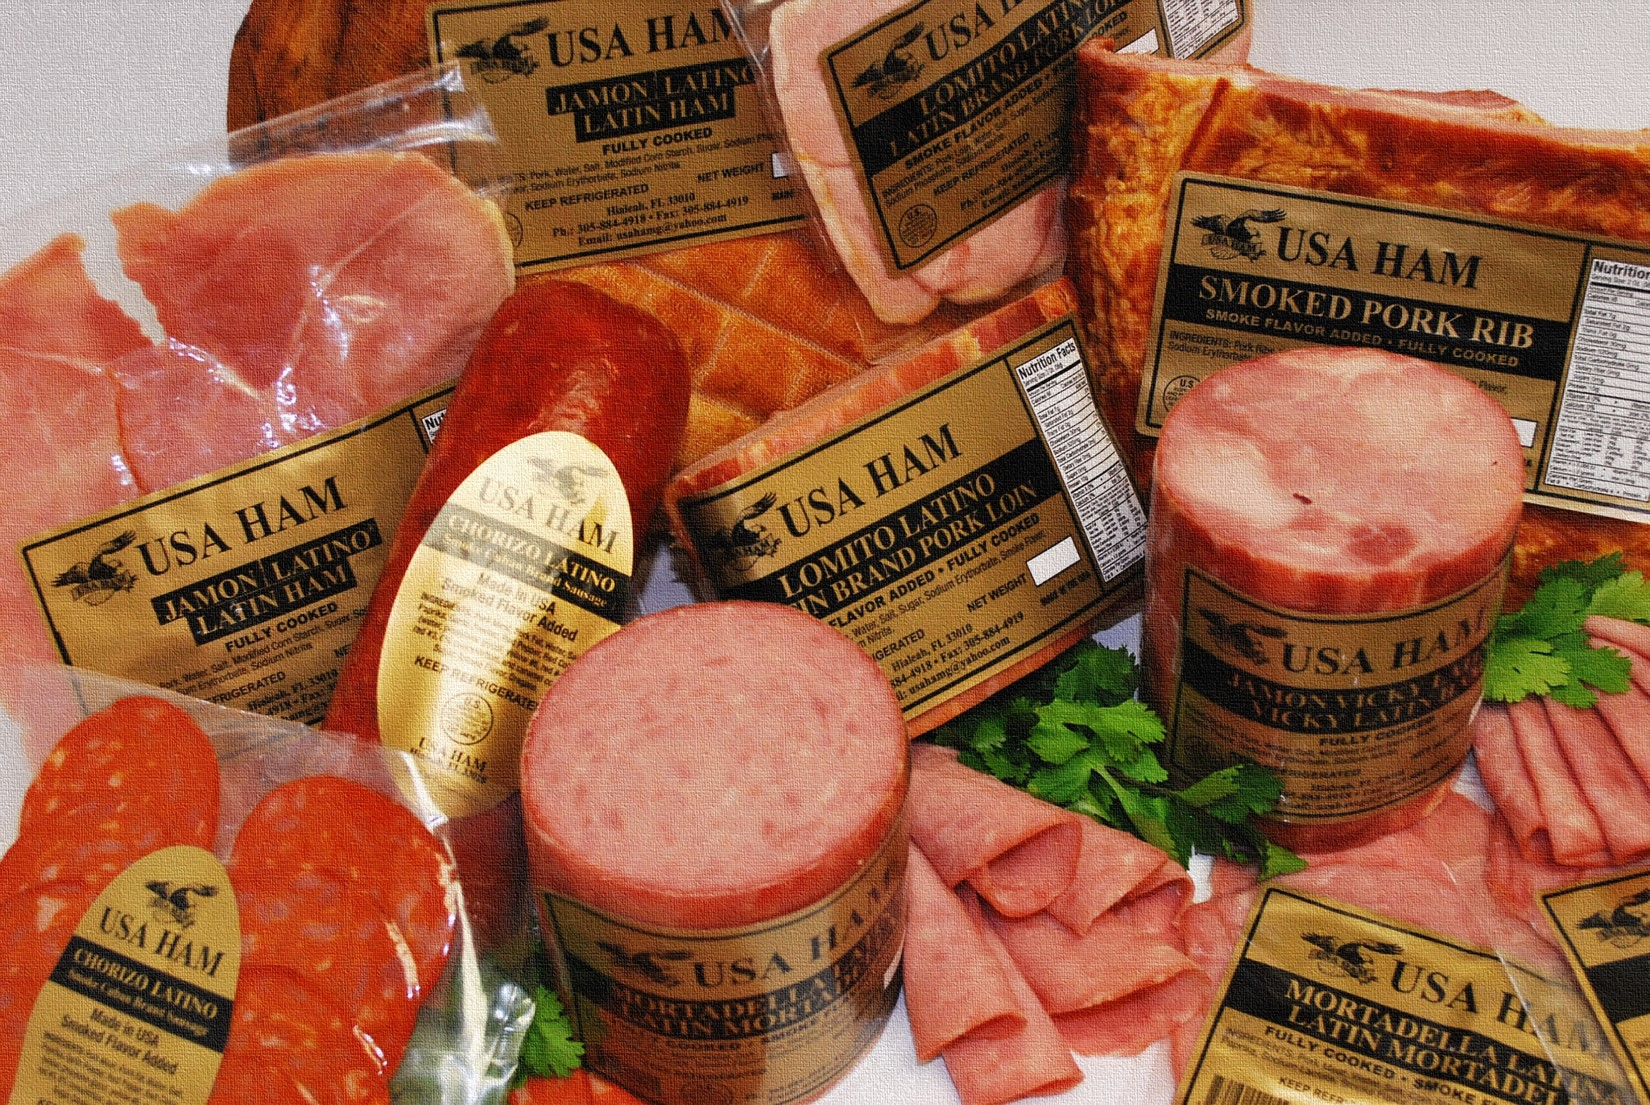 USA HAM products